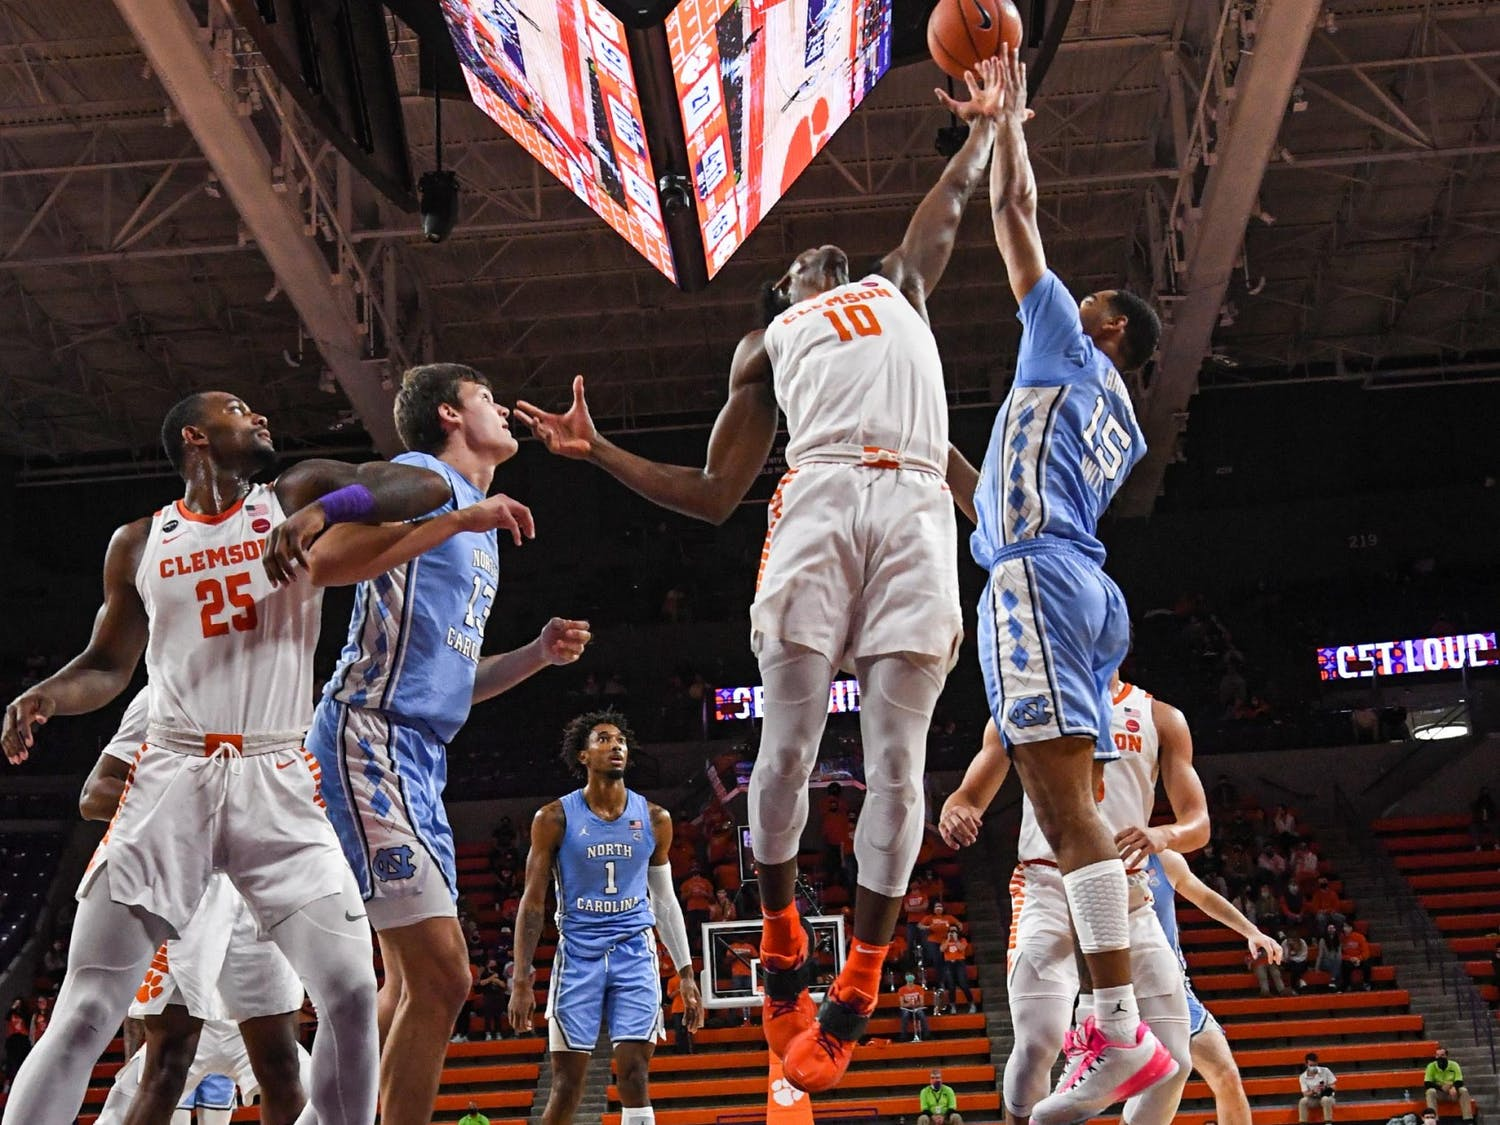 Clemson freshman guard Olivier-Maxence Prosper(10) and North Carolina forward Garrison Brooks(15) reach for a loose ball during the first half of a game at Littlejohn Coliseum on Feb. 2, 2021. Photo courtesy of Ken Ruinard.